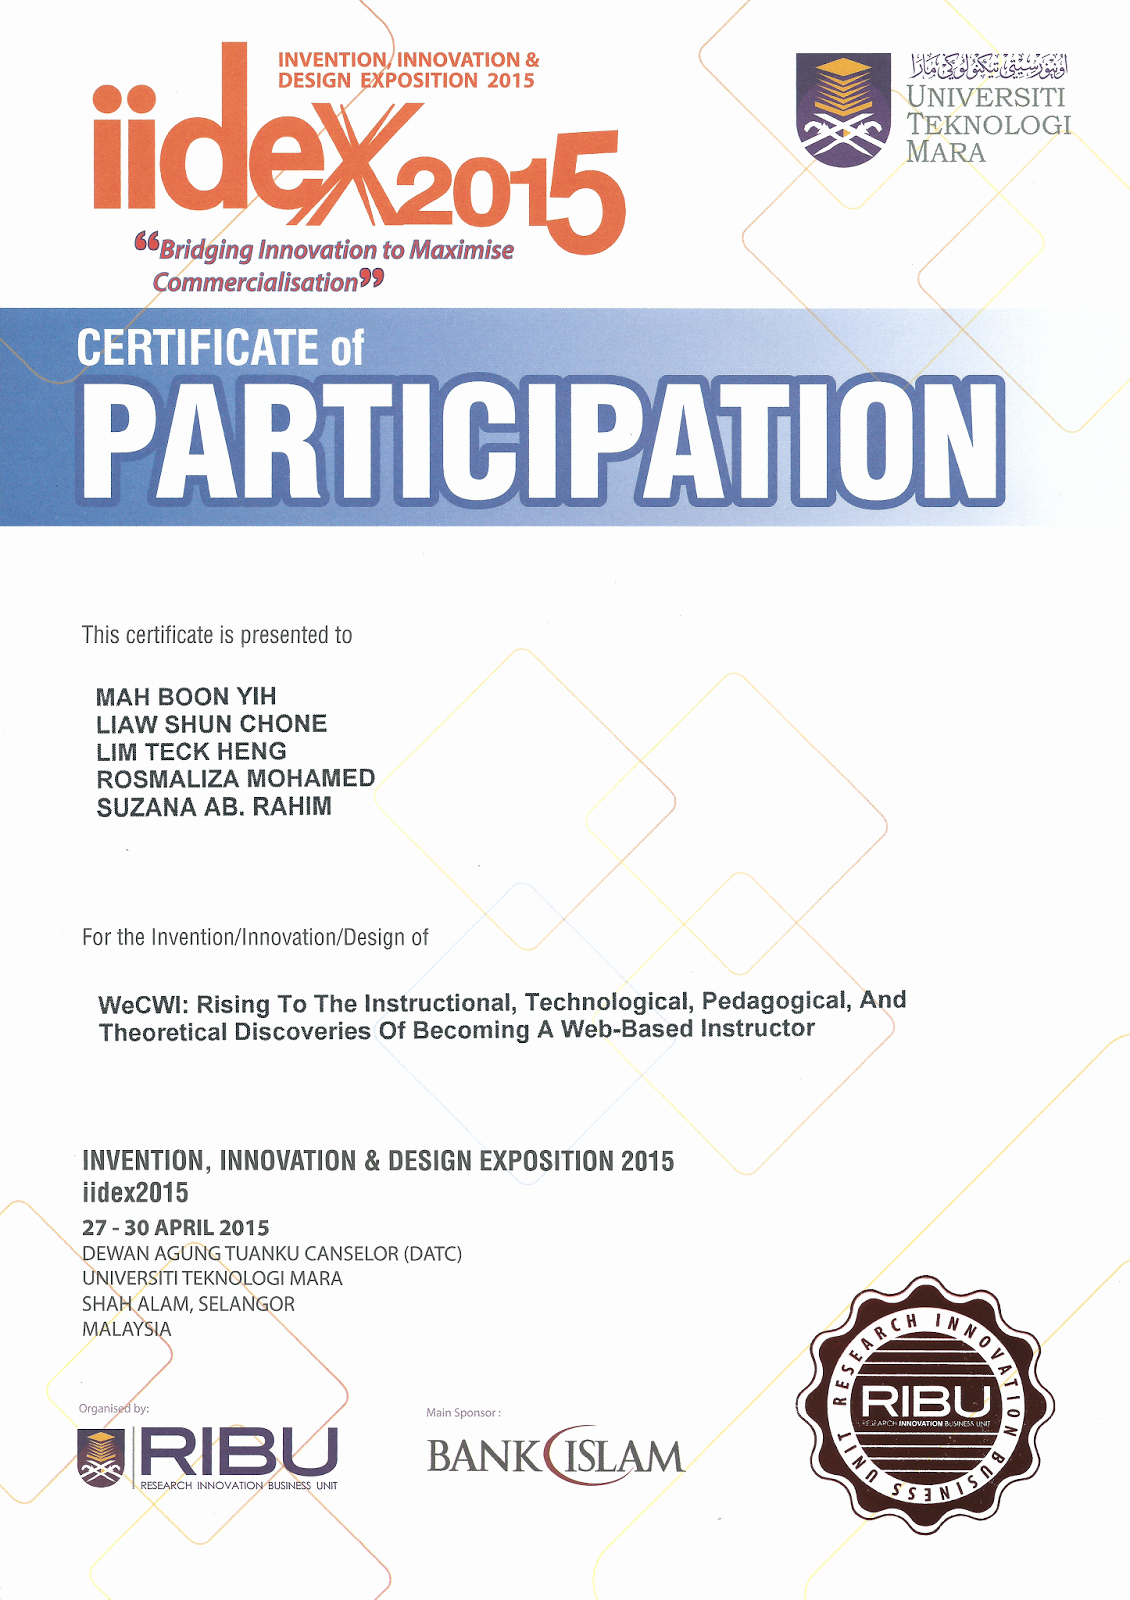 Certificate Of Participation Design Luxury Invention Innovation & Design Exposition Iidex2015